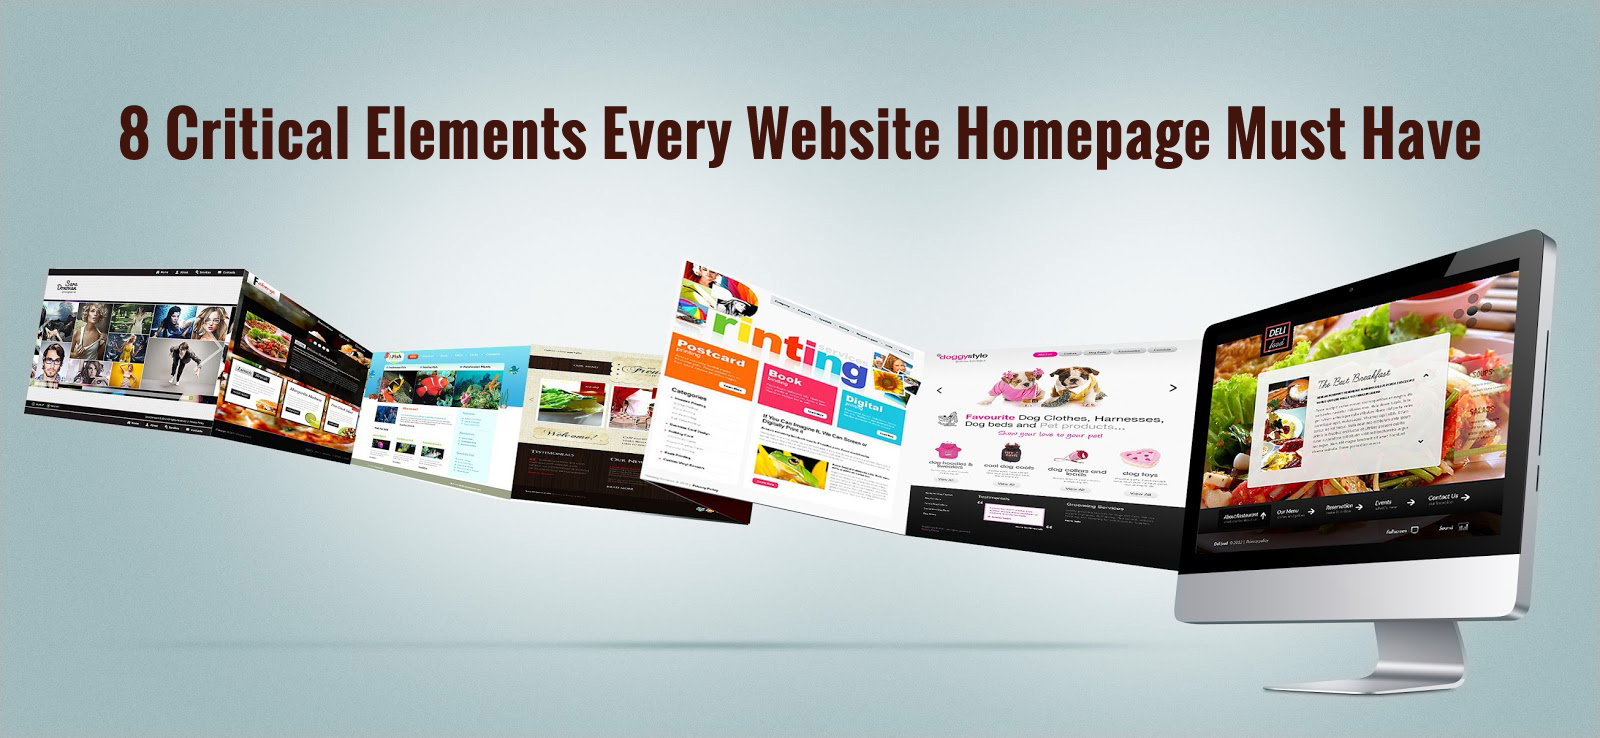 8 Critical Elements Every Website Homepage Must Have